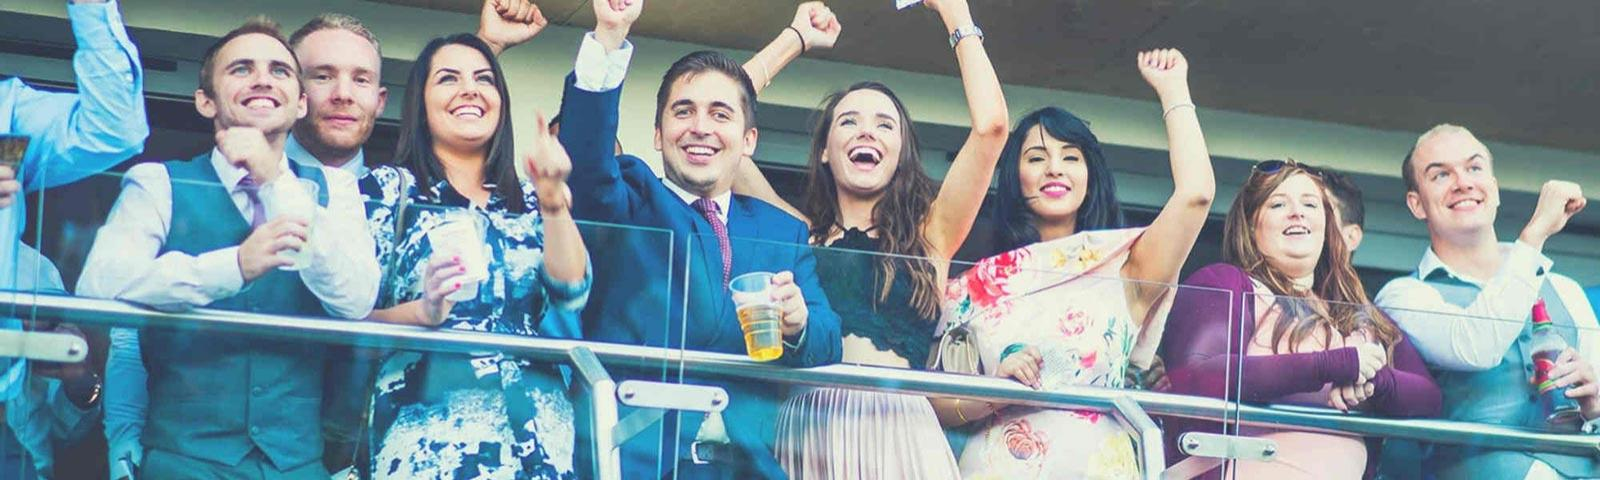 Friends cheering as they enjoy quality racing at Bath Racecourse.